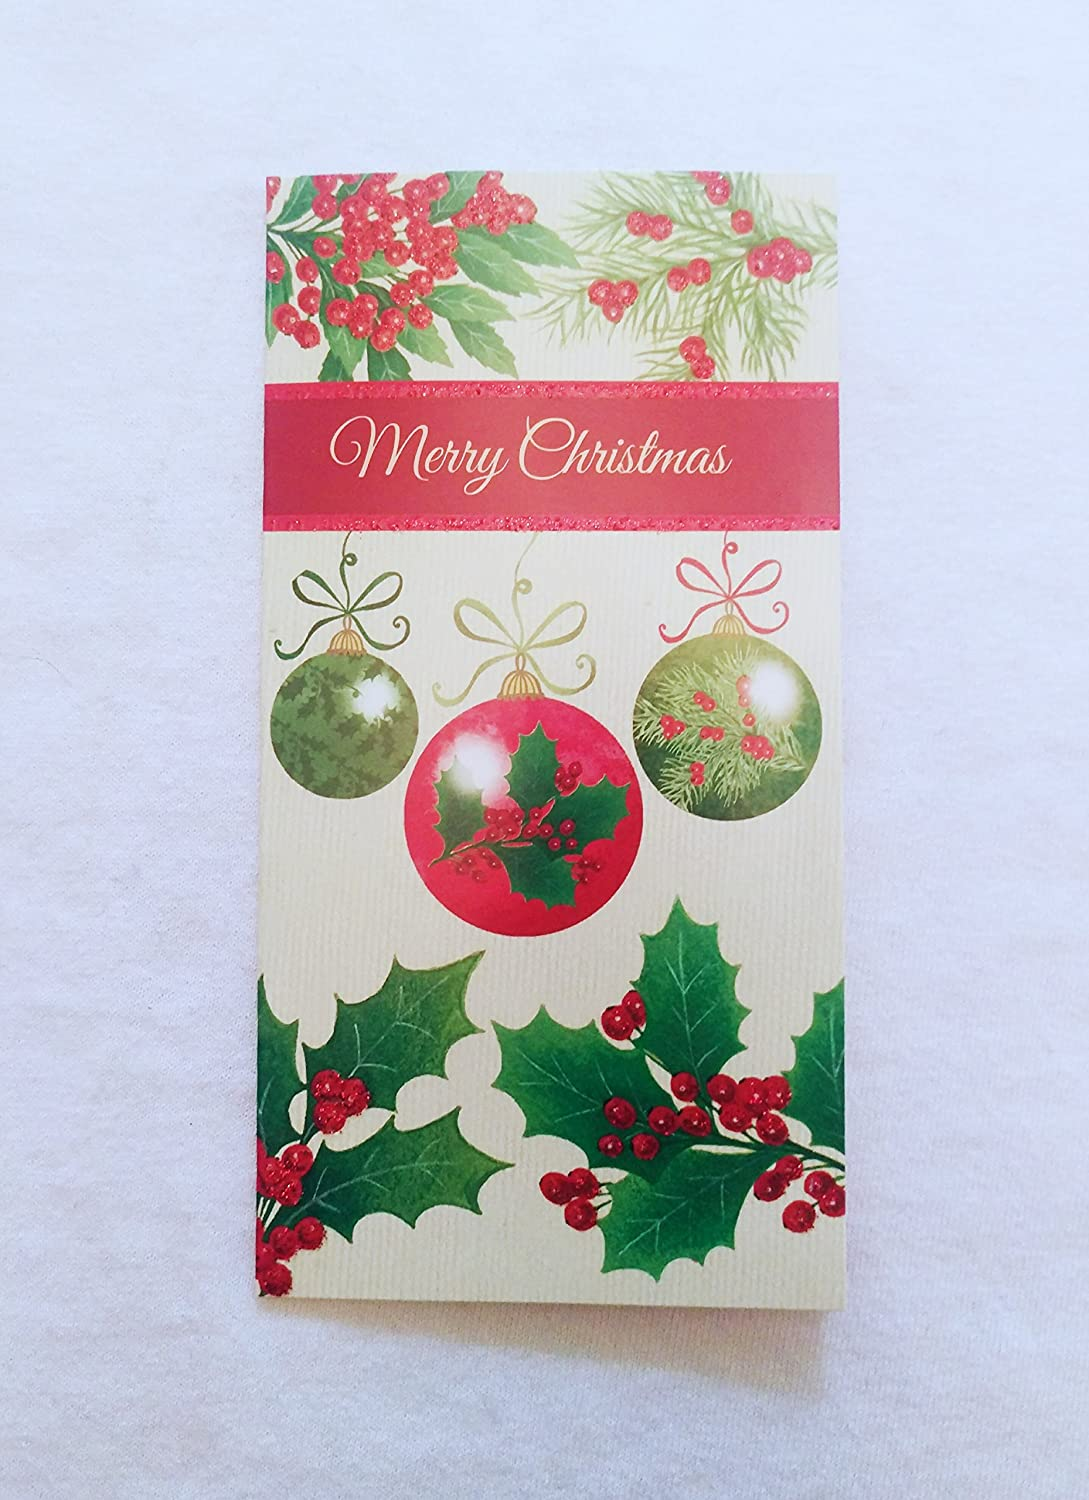 Christmas Money or Gift Card Holder Cards - Set of 8 with Metallic/Glitter Accents (Holly Jolly) Christmas House